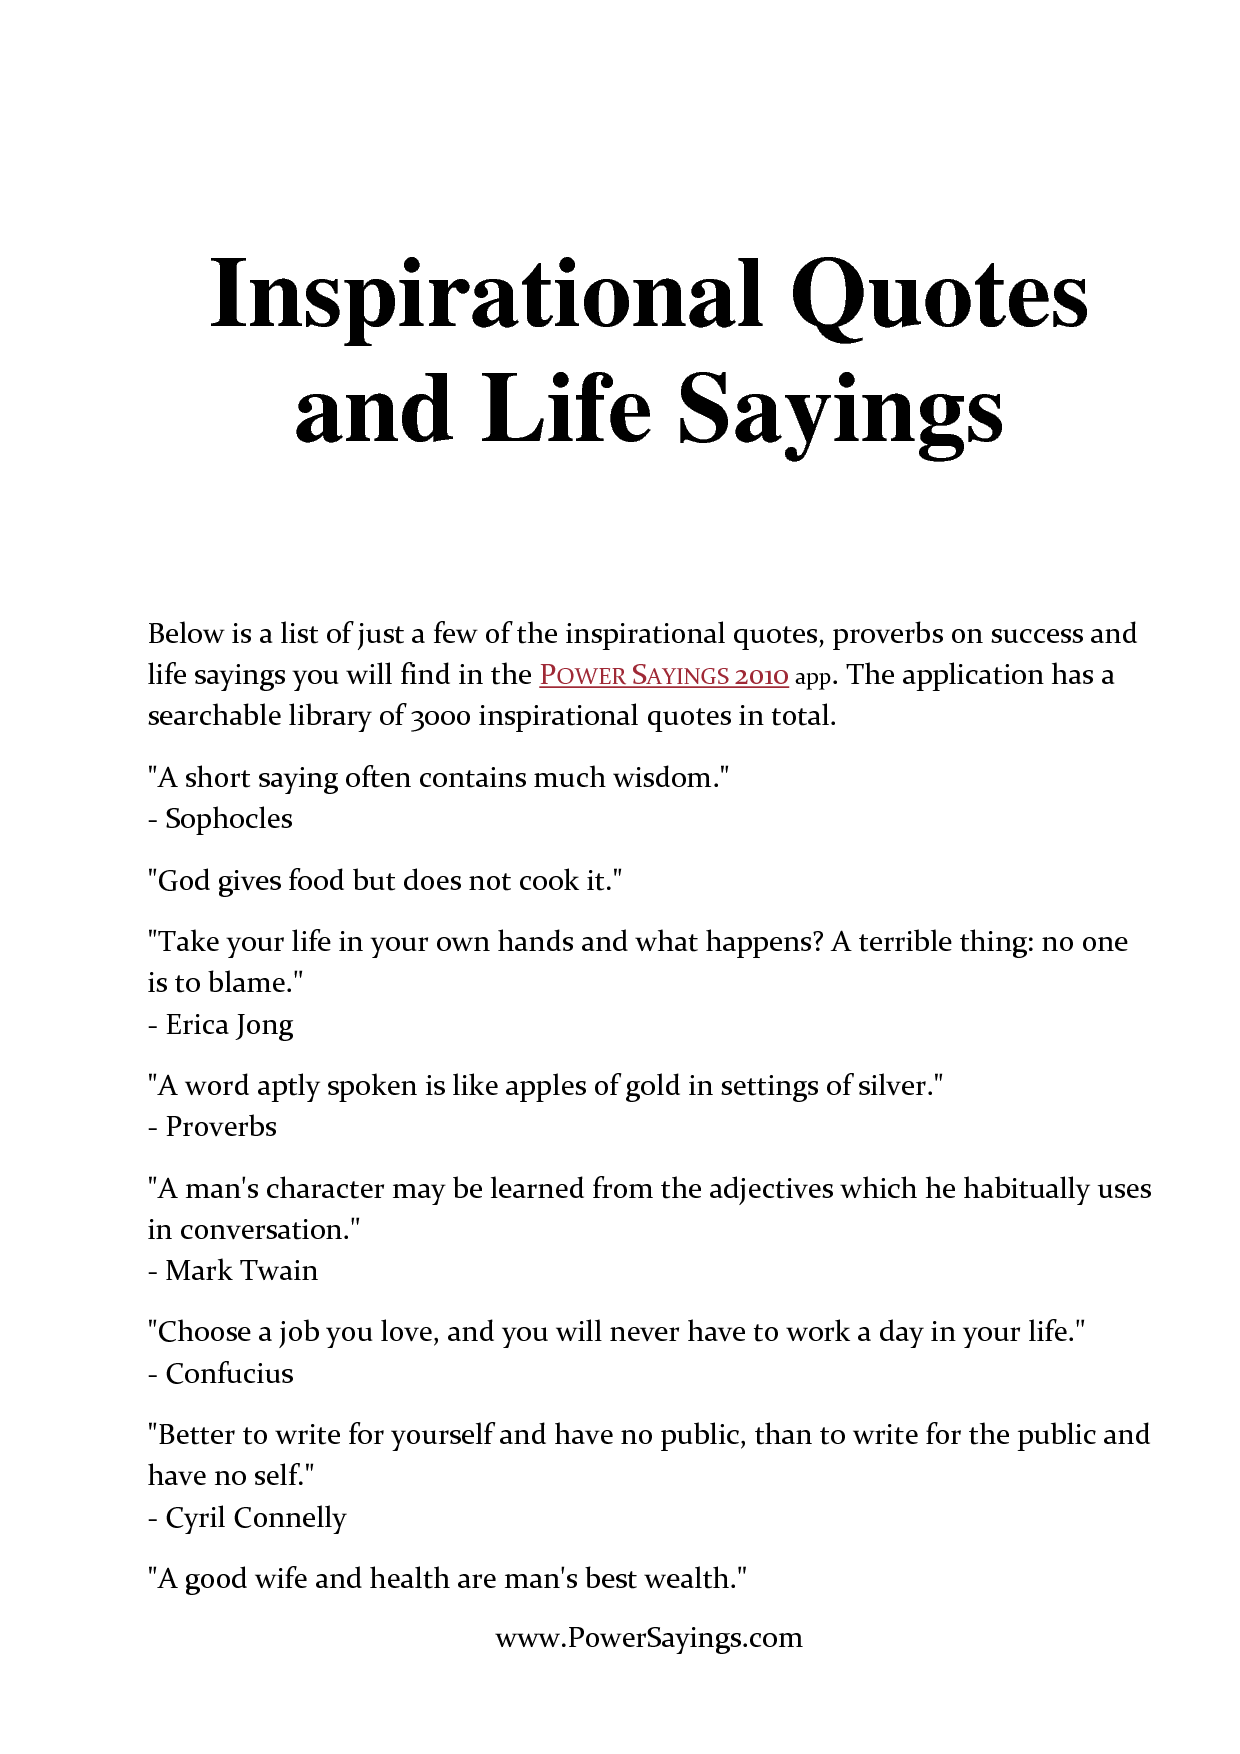 List Of Inspirational Quotes About Life Inspirational Quotes About Life  Inspirational Quotes And Life